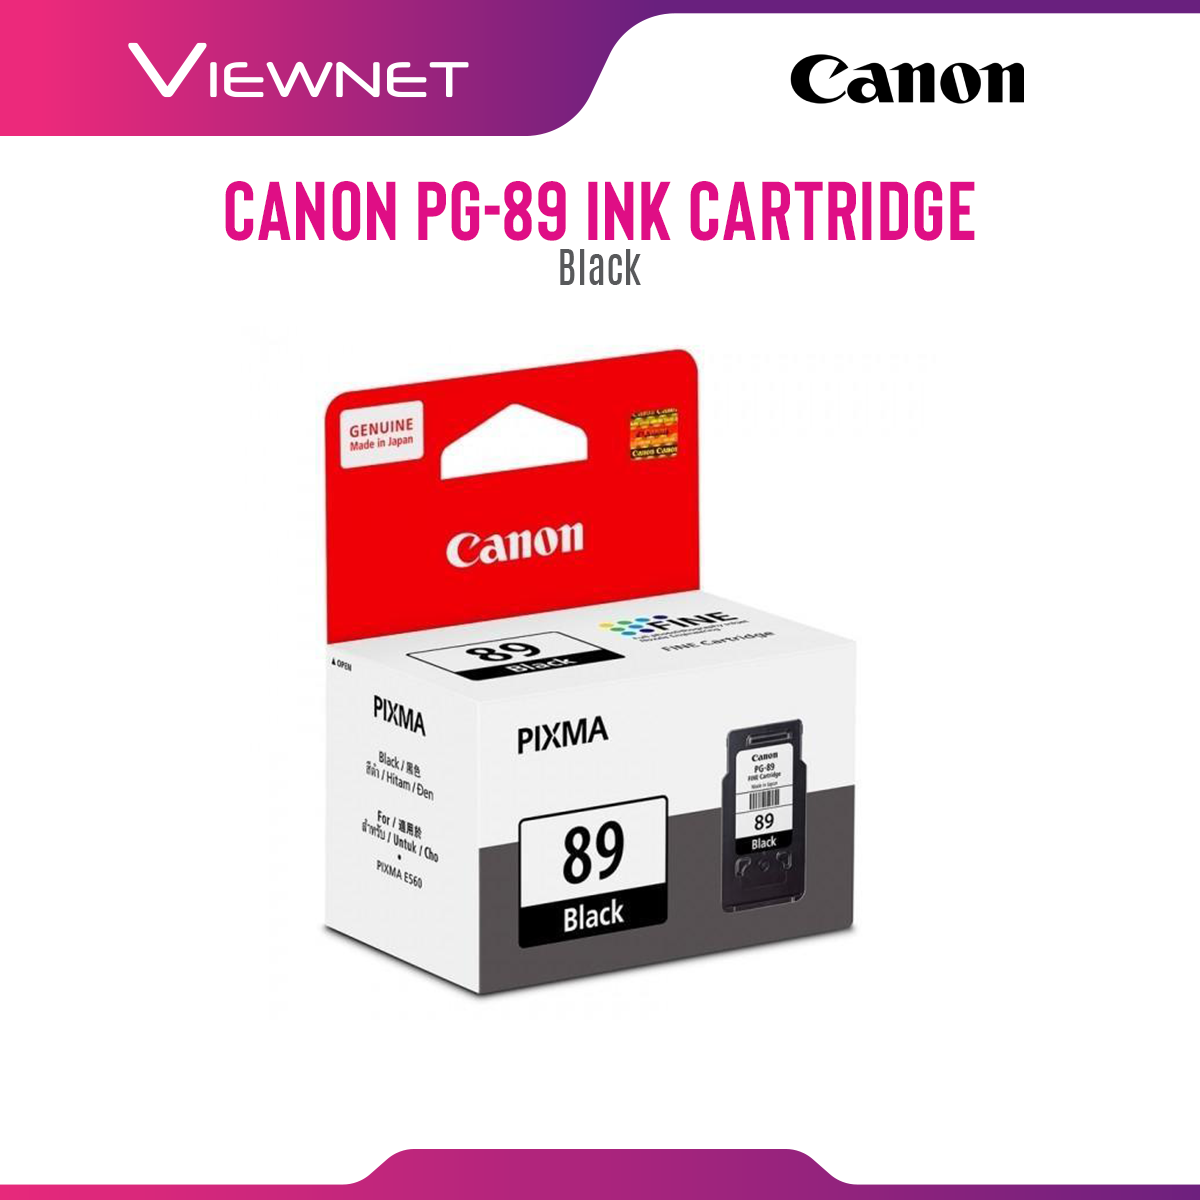 Canon PG-89 (Black), CL-99 (Color) Ink Cartridge for Printer Pixma E560